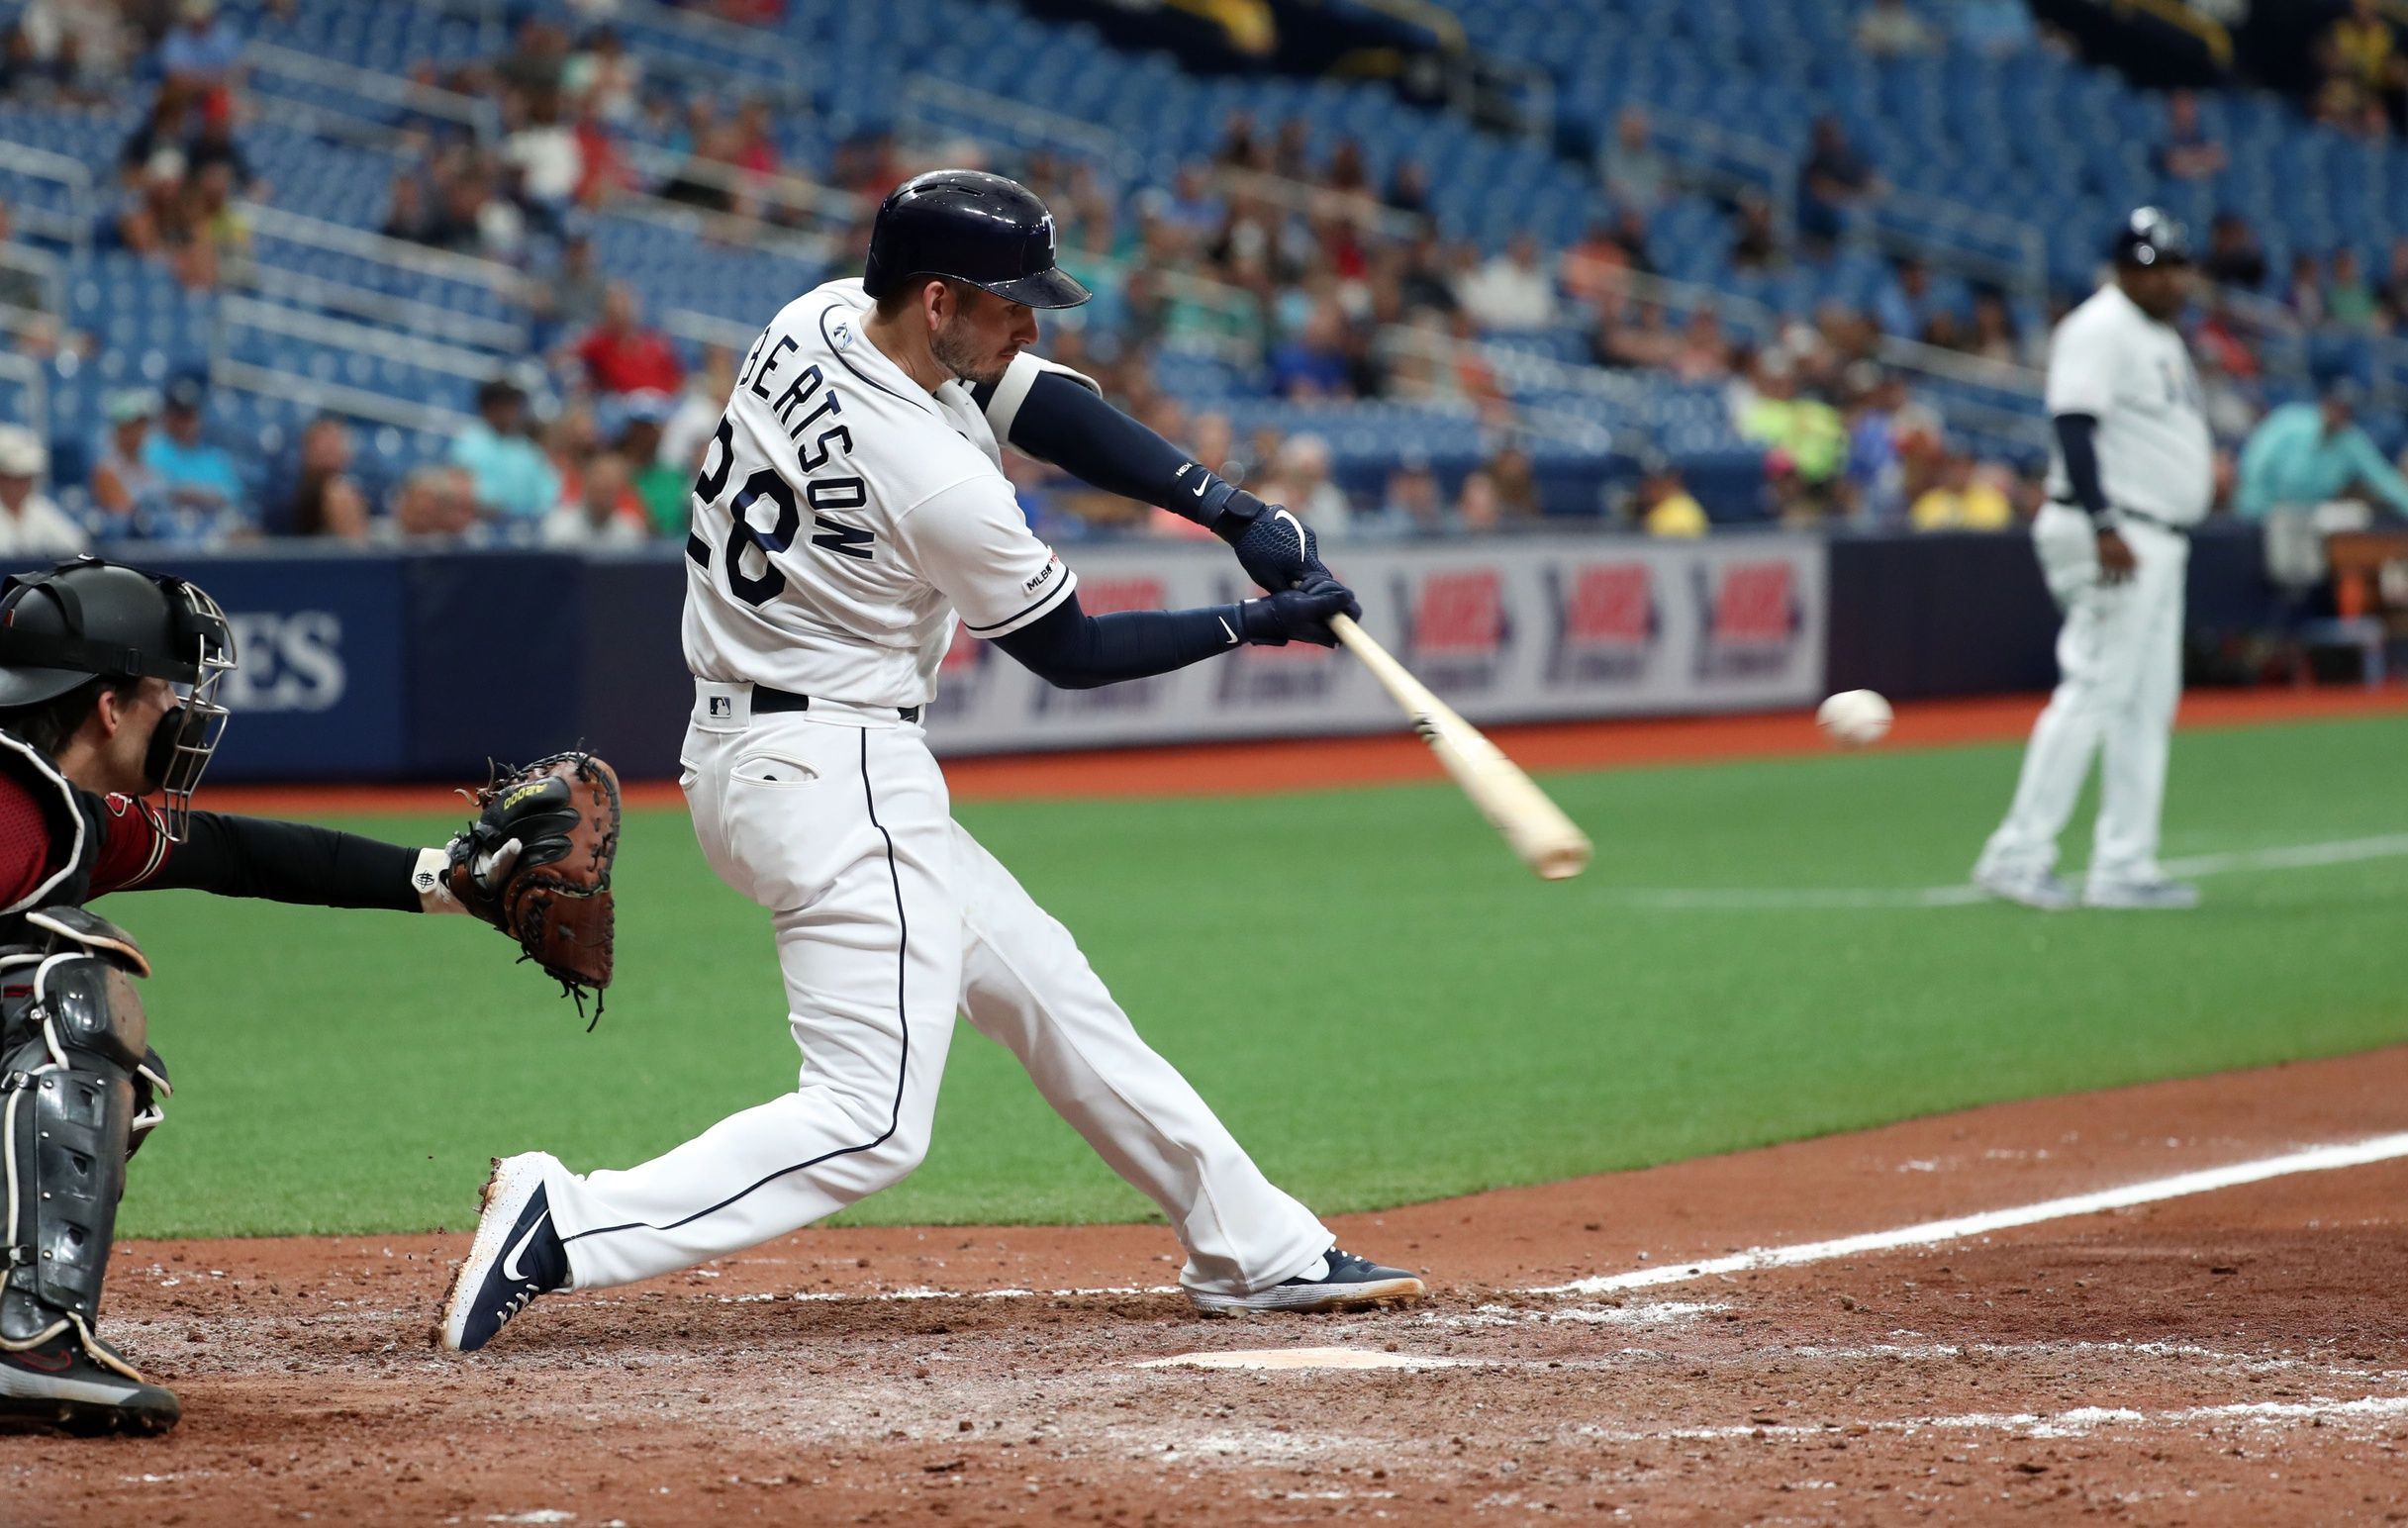 Looks Like This Player Has Made Some Great Contact With The Ball Here Mlb Baseball Picksparlys Mlb Gary Sanchez Yankees